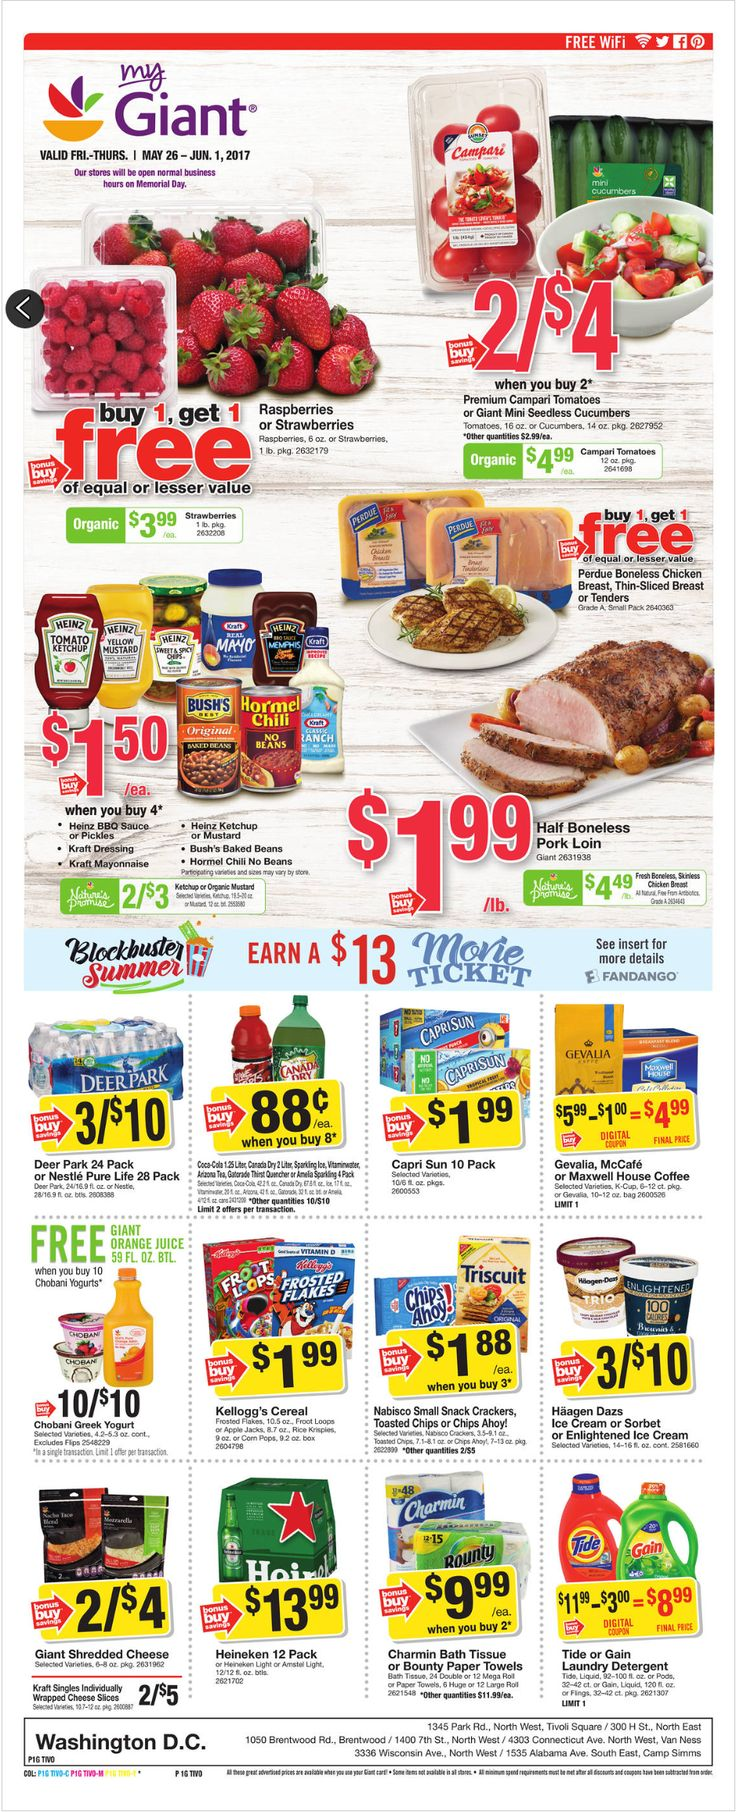 Giant Food Weekly Ad May 26 - June 1, 2017 - http://www.olcatalog.com/grocery/giant-food-weekly-ad.html